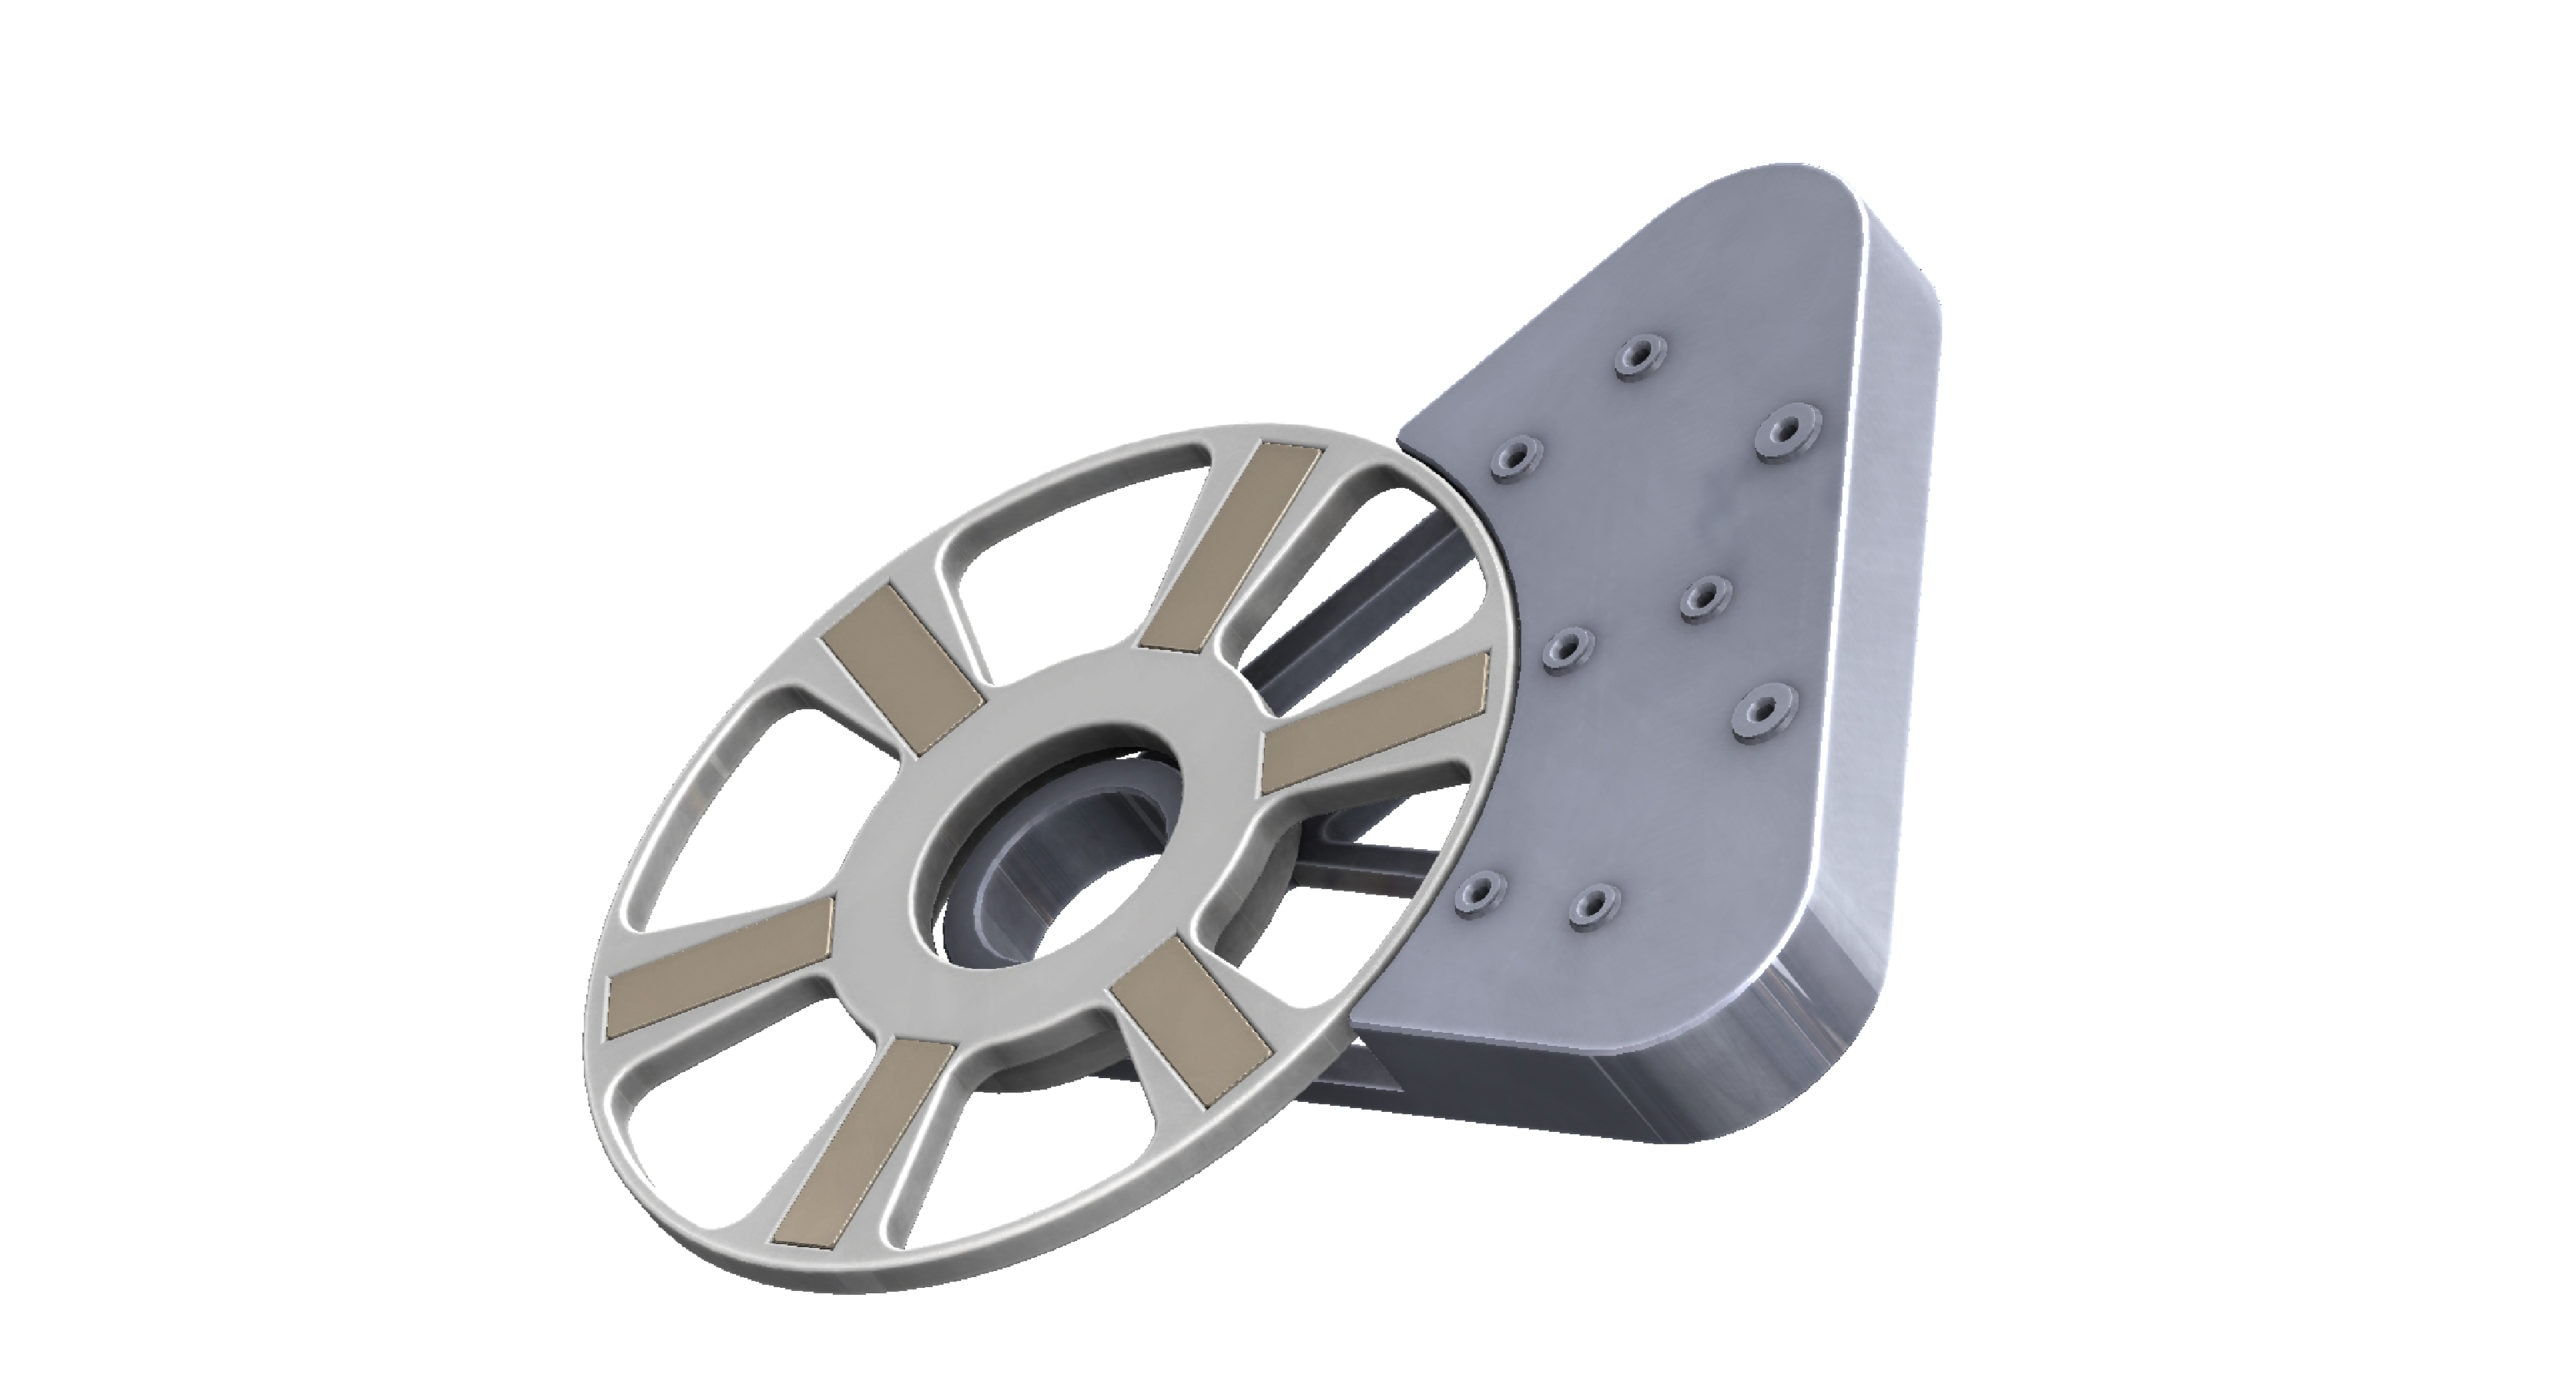 magnet wheel for movement detection